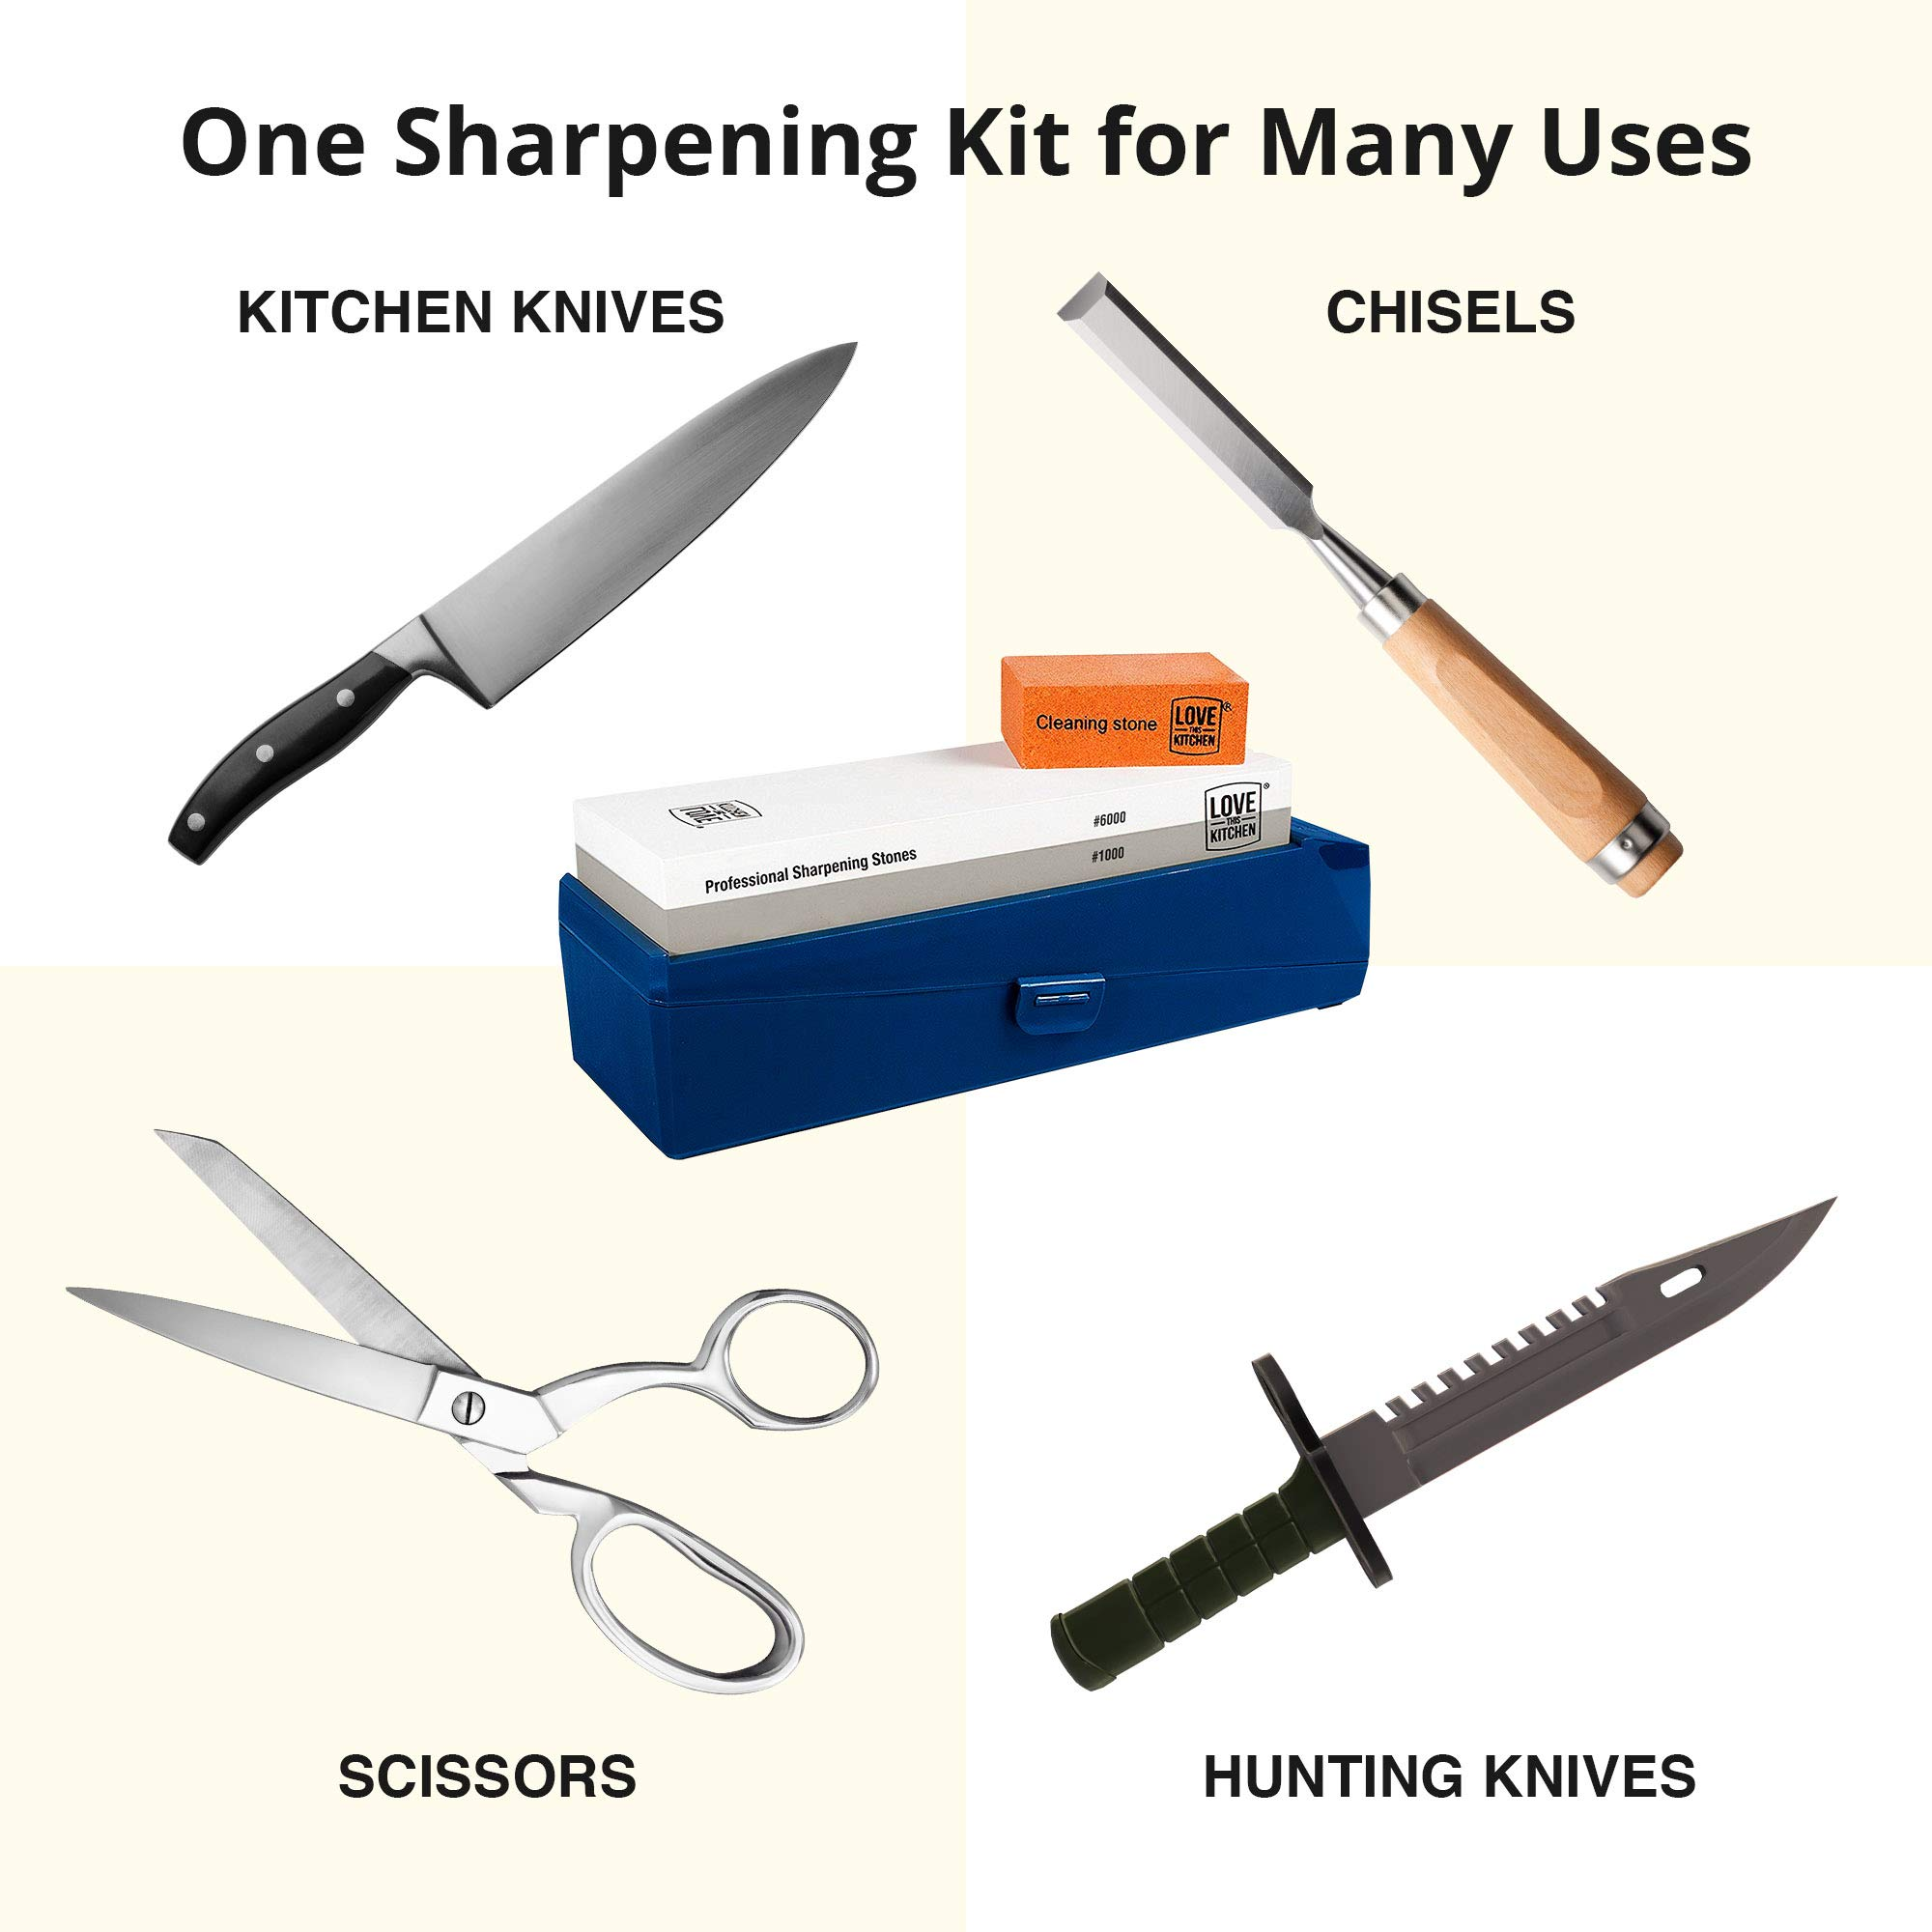 """Knife Sharpening Stone Grits 1000/6000 - Larger 8.25""""x 2.75"""" Premium Dual Whetstone Knife Sharpeners - Best for Chef & Kitchen Knives. Protective Case with Non-Slip Base & Cleaning/Lapping Stone Kit by Love This Kitchen (Image #8)"""